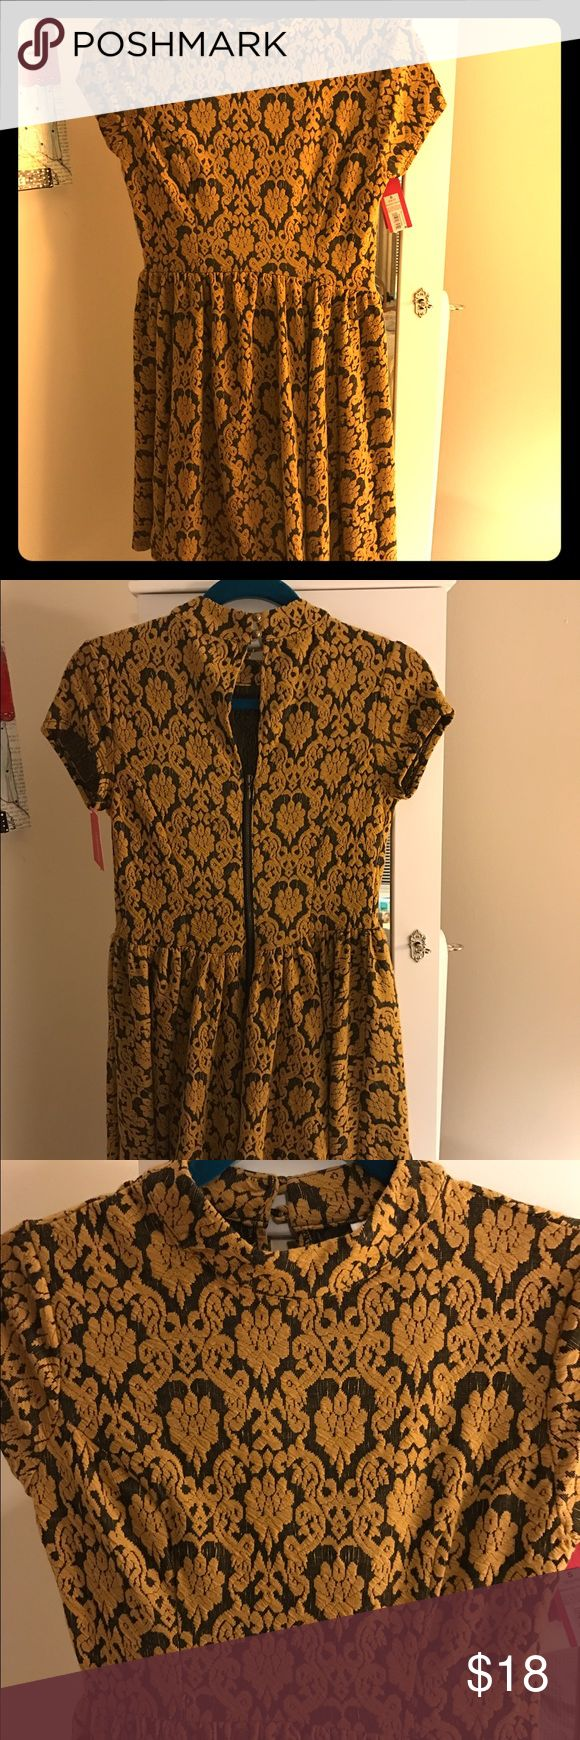 Brand new tapestry patterned mini dress. Bell mini dress with high neck and capped sleeves. It's super soft cotton and looks dressy or casual. Dresses Midi